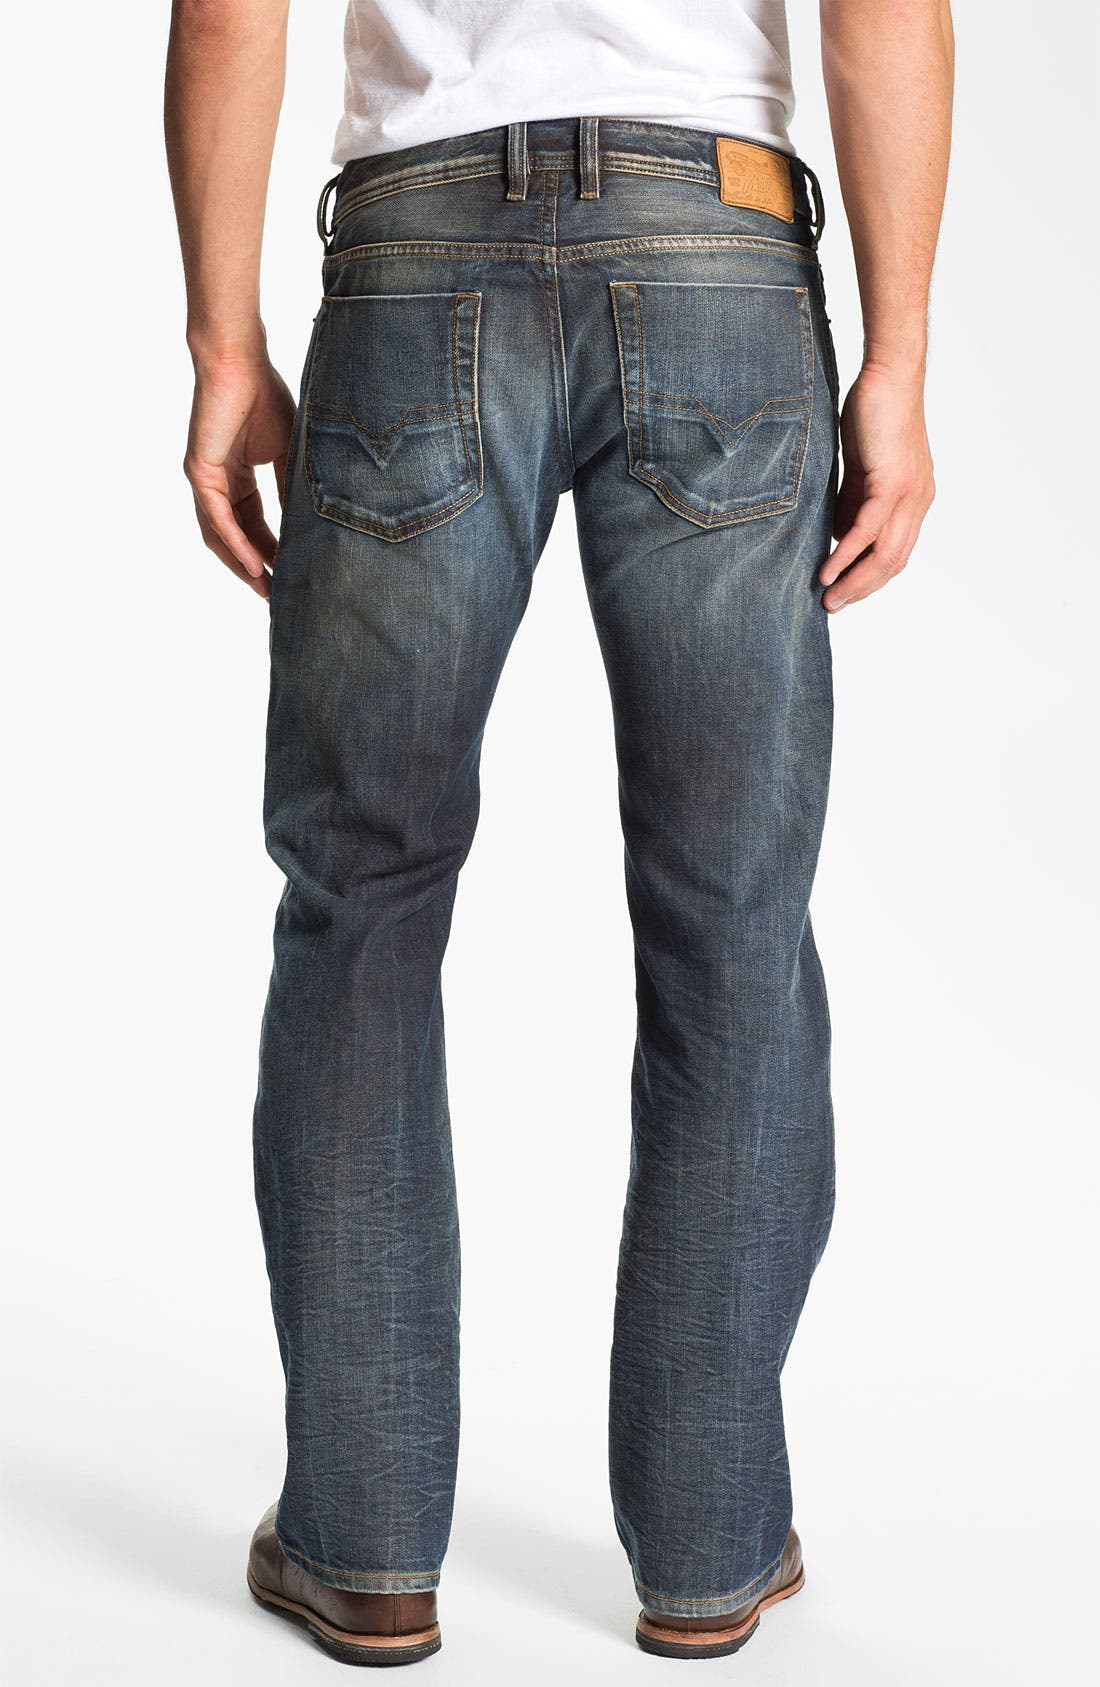 Alternate Image 1 Selected - DIESEL® 'Zatiny' Bootcut Jeans (803M)